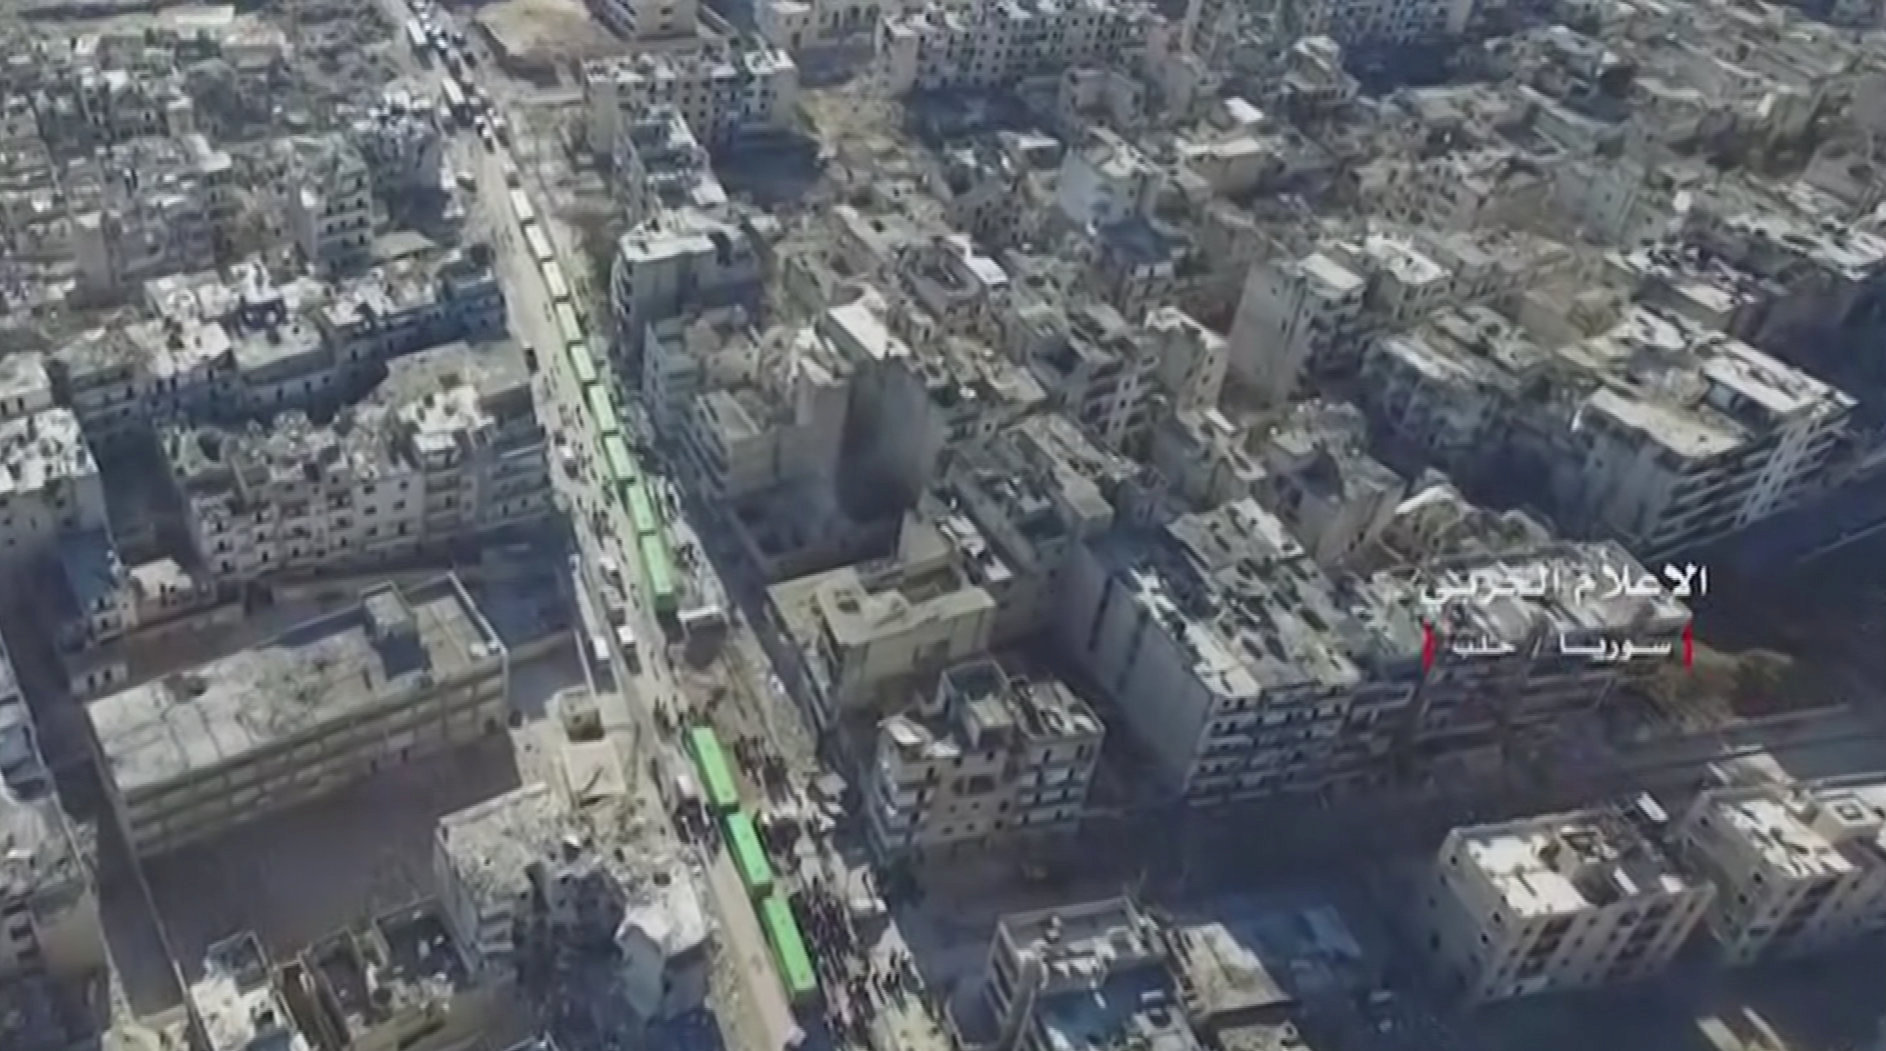 A still image from video taken December 15, 2016 over eastern Aleppo shows an operation to evacuate thousands of civilians and fighters in buses from Aleppo, Syria